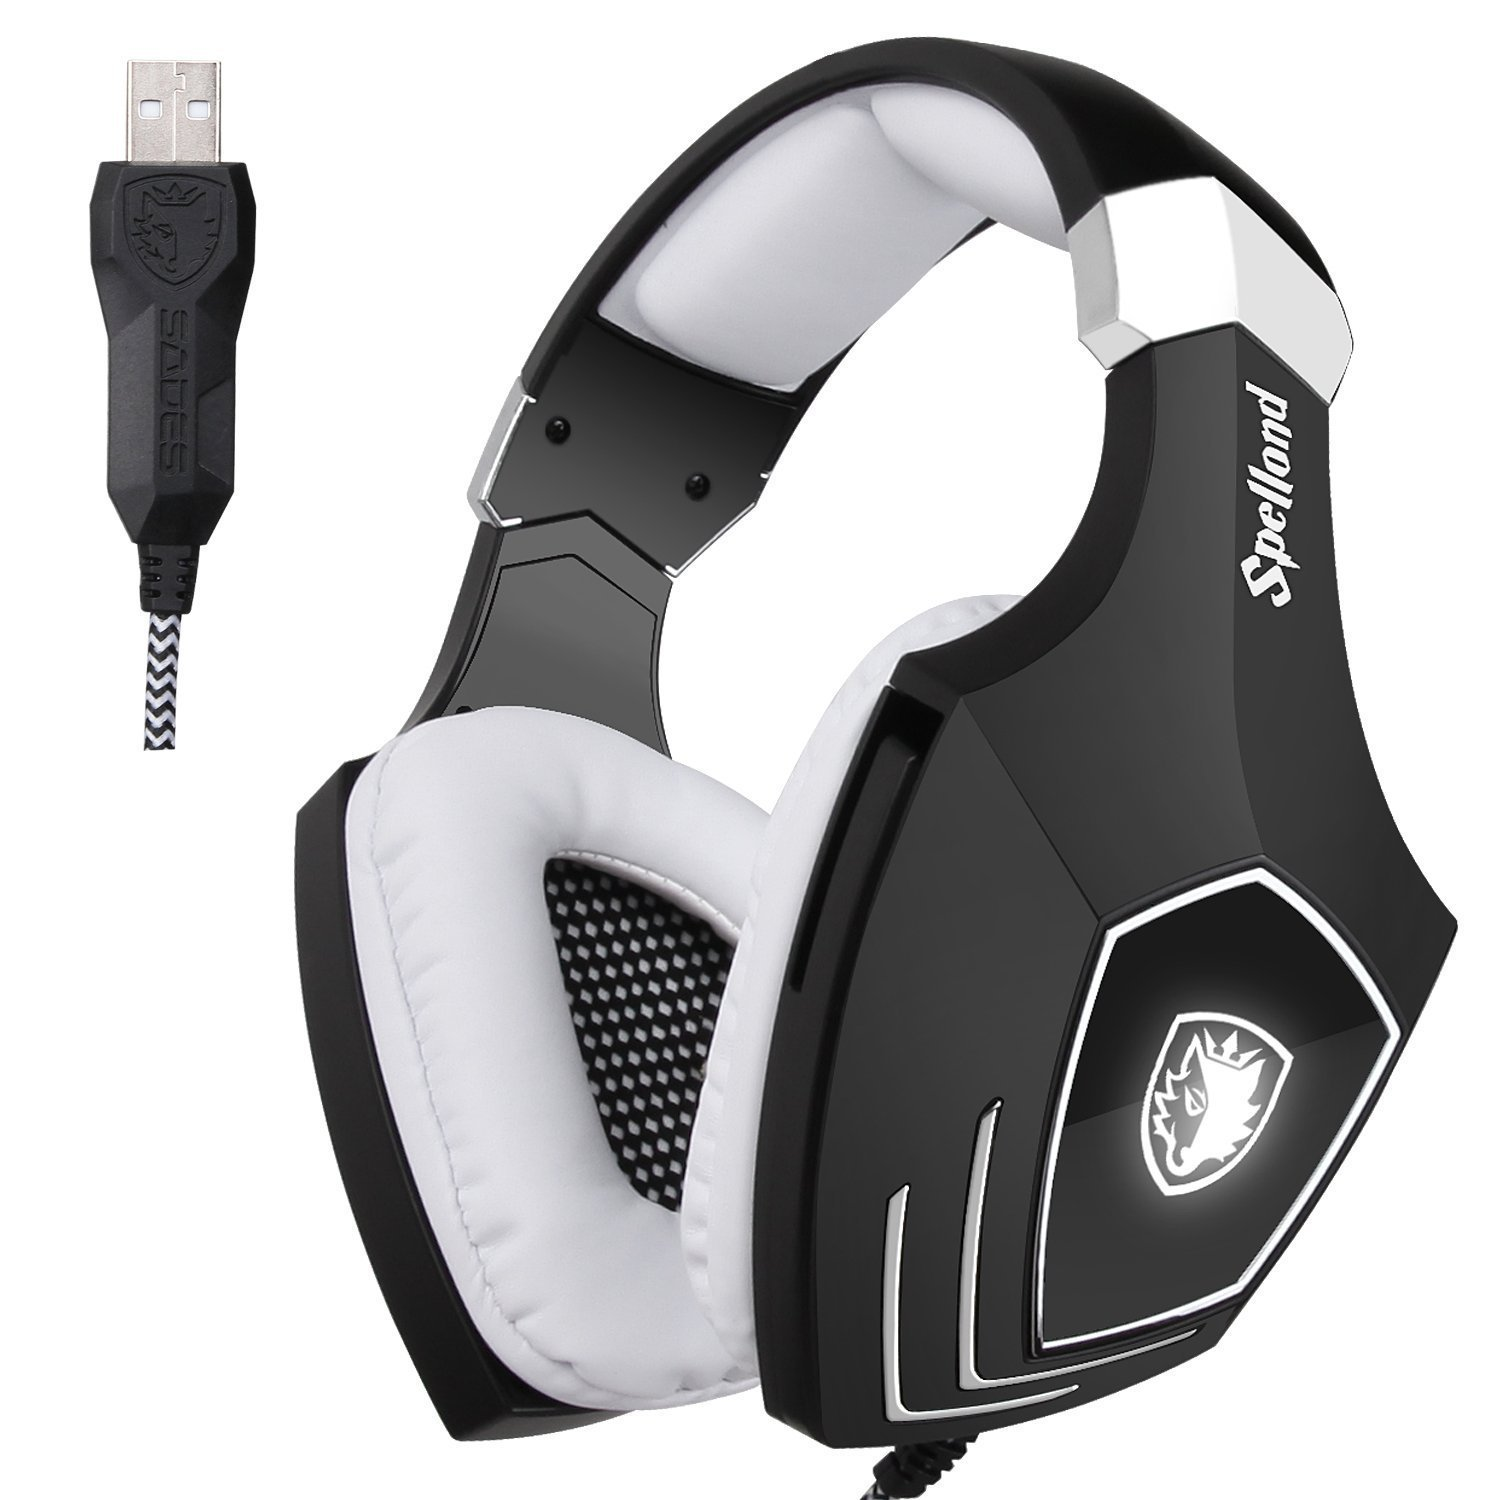 73058cc3997 Amazon.com: SADES A60S/OMG PC Wired USB Stereo Gaming Headset Headband Over  Ear Headphones with Microphone Noise Isolating Volume Control LED Light ...